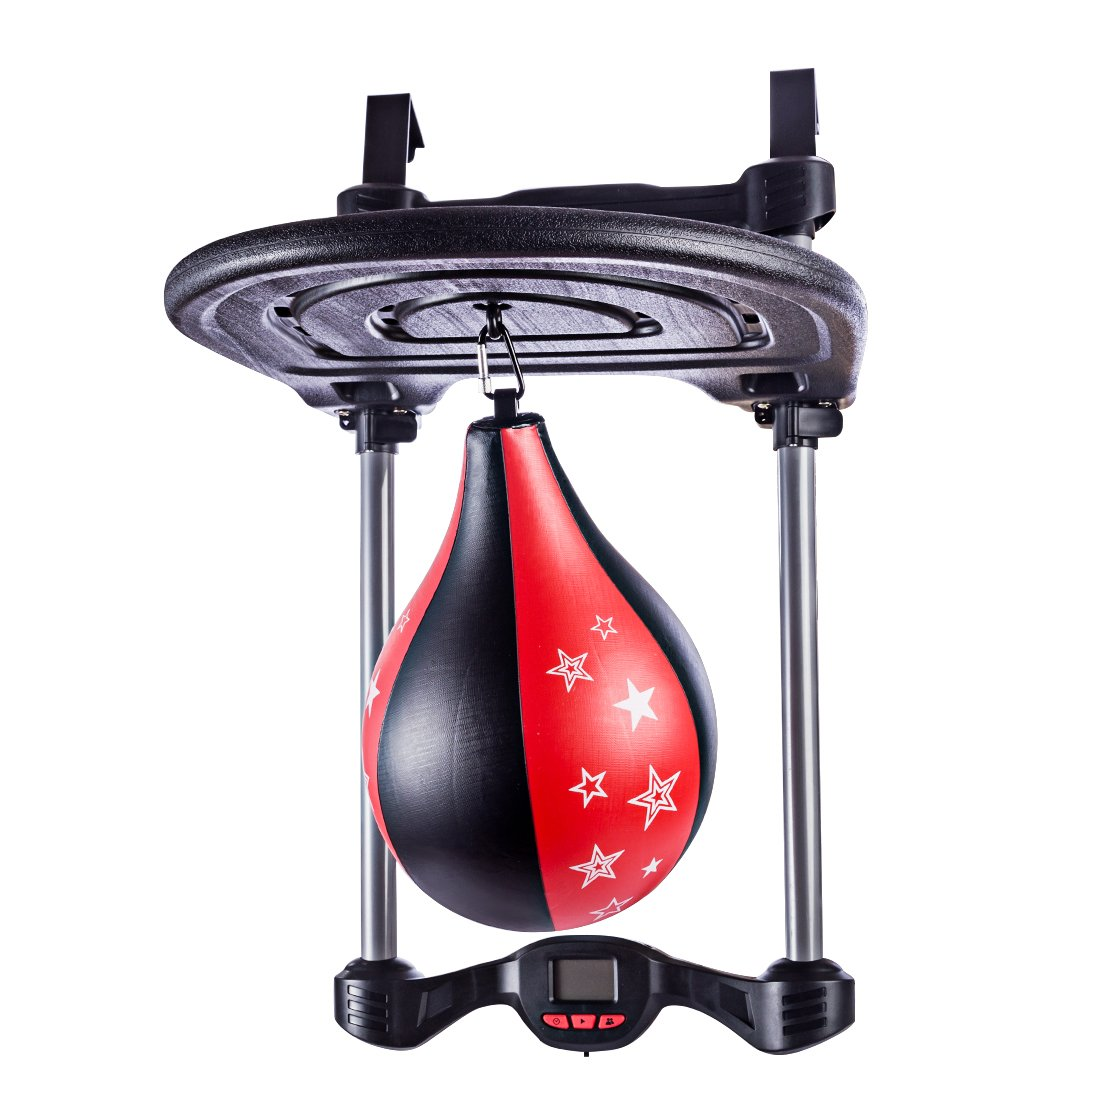 Lingxuinfo Children's Boxing Sports Set Pendant Type Outdoor Boxing Ball Toys Punching Ball for Kids by Lingxuinfo (Image #2)